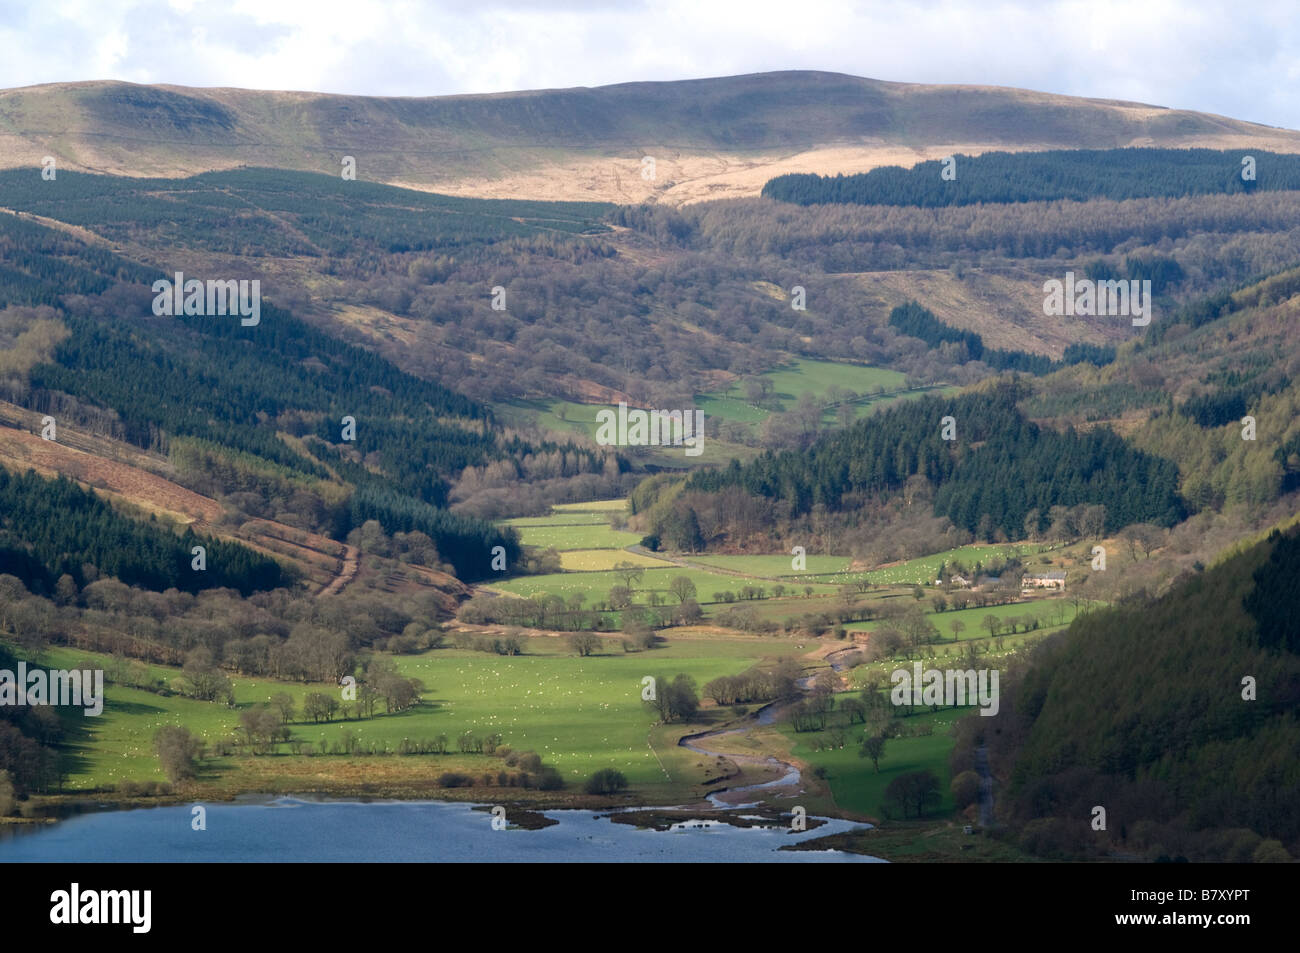 Aerial View of the Talybont Valley in the Brecon Beacons National Park Wales - Stock Image